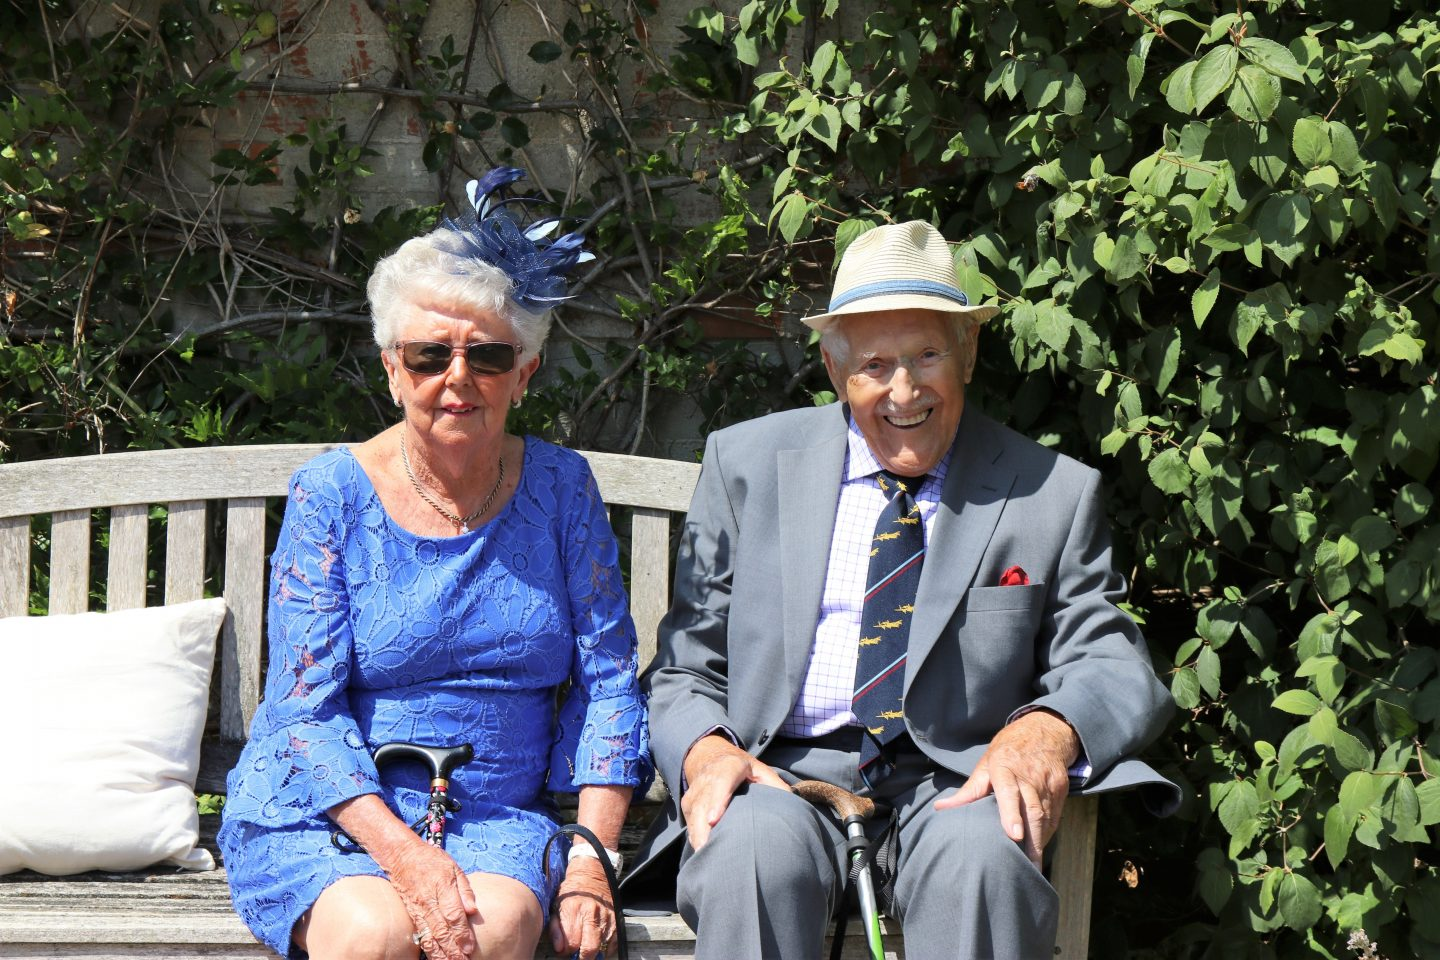 elderly couple sitting on park bench